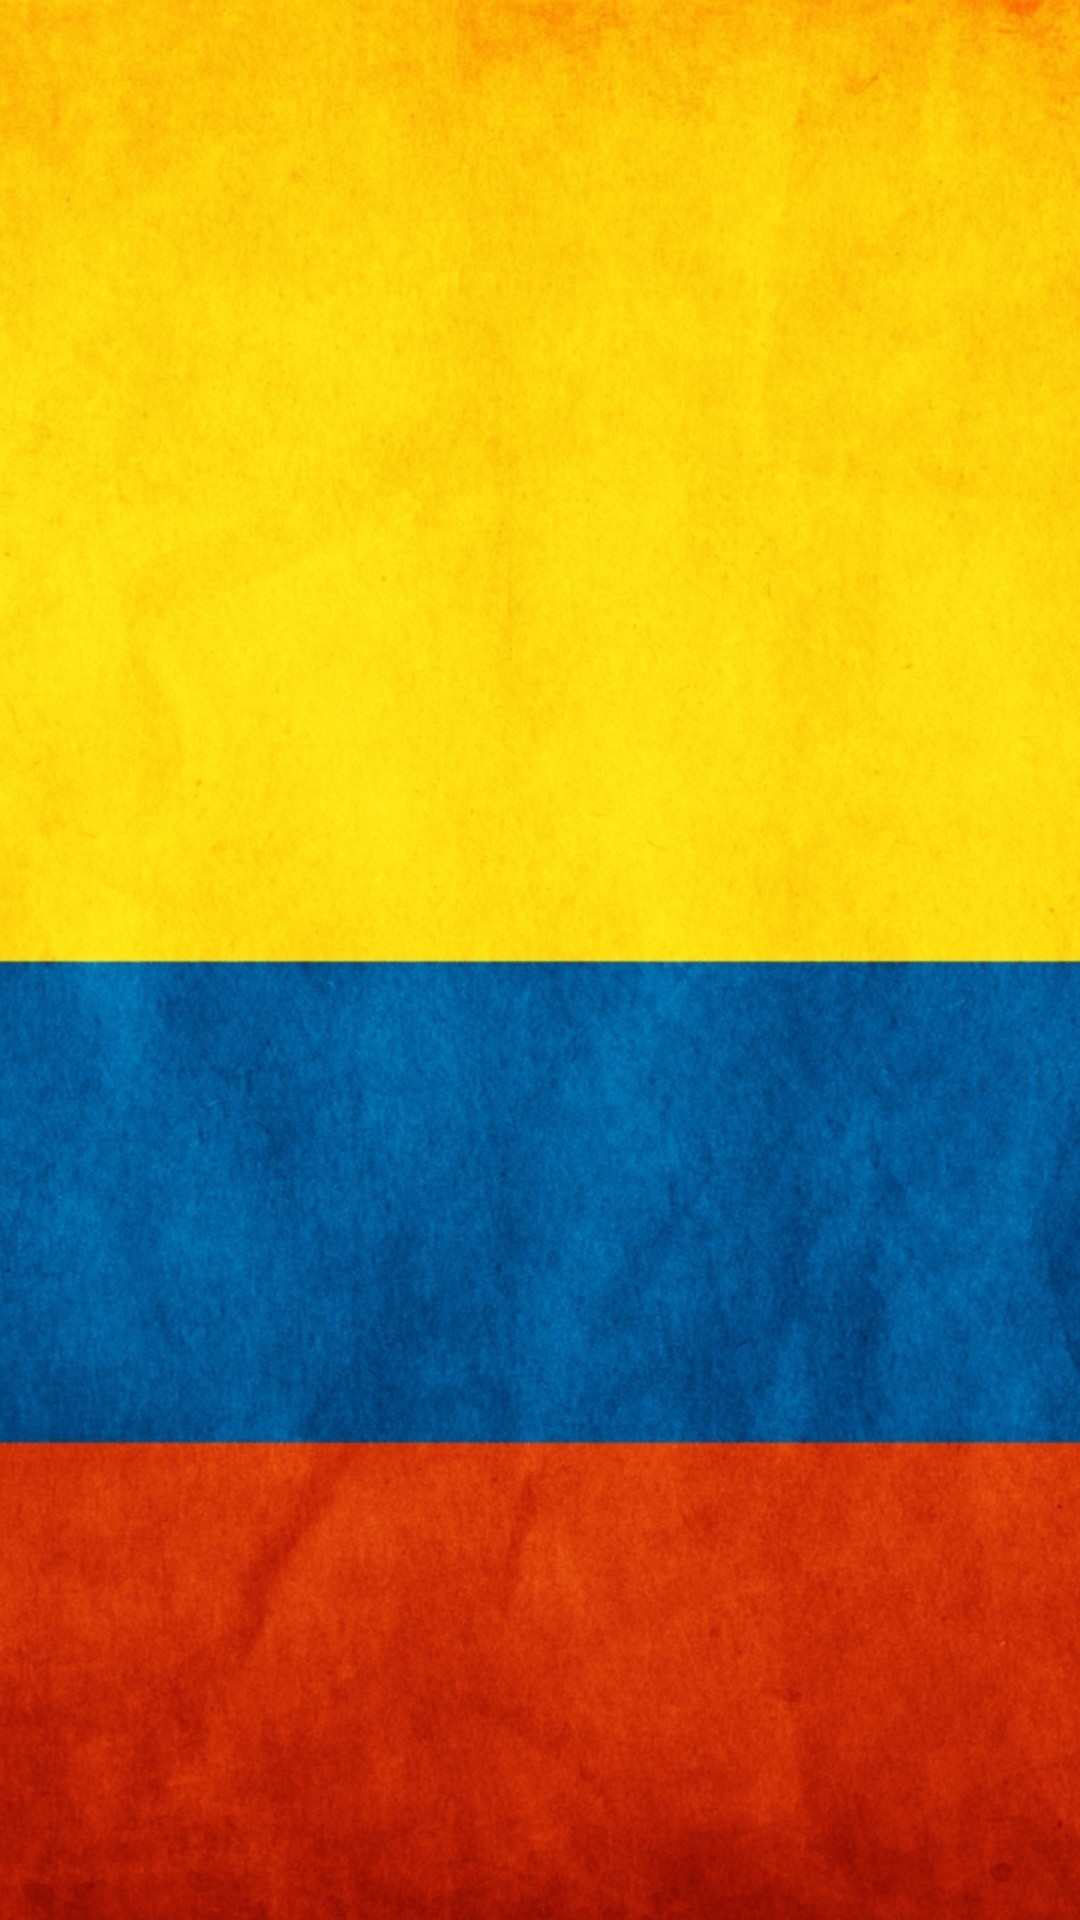 Res: 1080x1920, PS38: Colombia Wallpaper High Resolution, Awesome Colombia